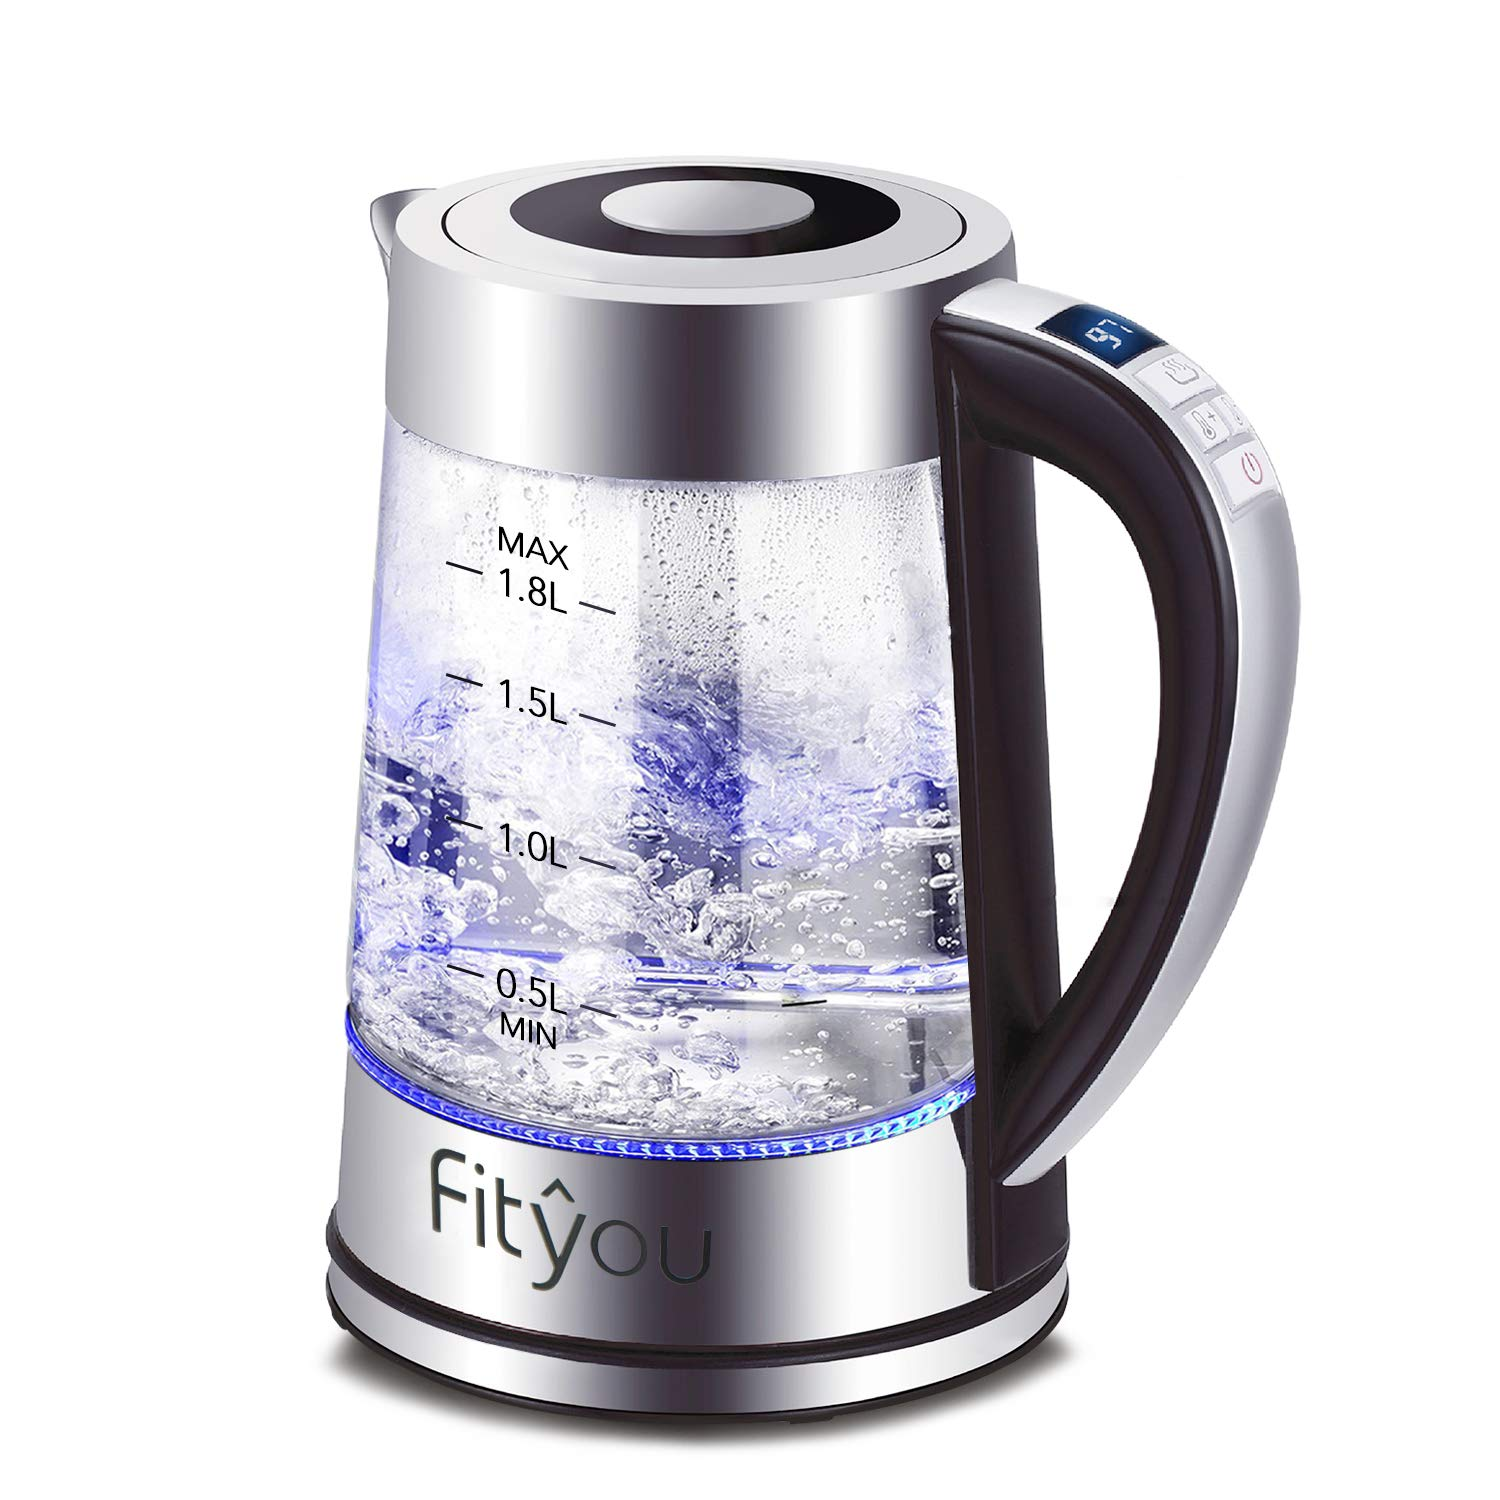 Electric Kettle, Fityou 1.8L 1500W Cordless Glass Water Boiler Tea Pot with Stainless Removable Infuser, Freely Temperature Setting(40℃-100℃), 24Hrs Keep Warm Function, Blue LED Display, Auto Shut-off